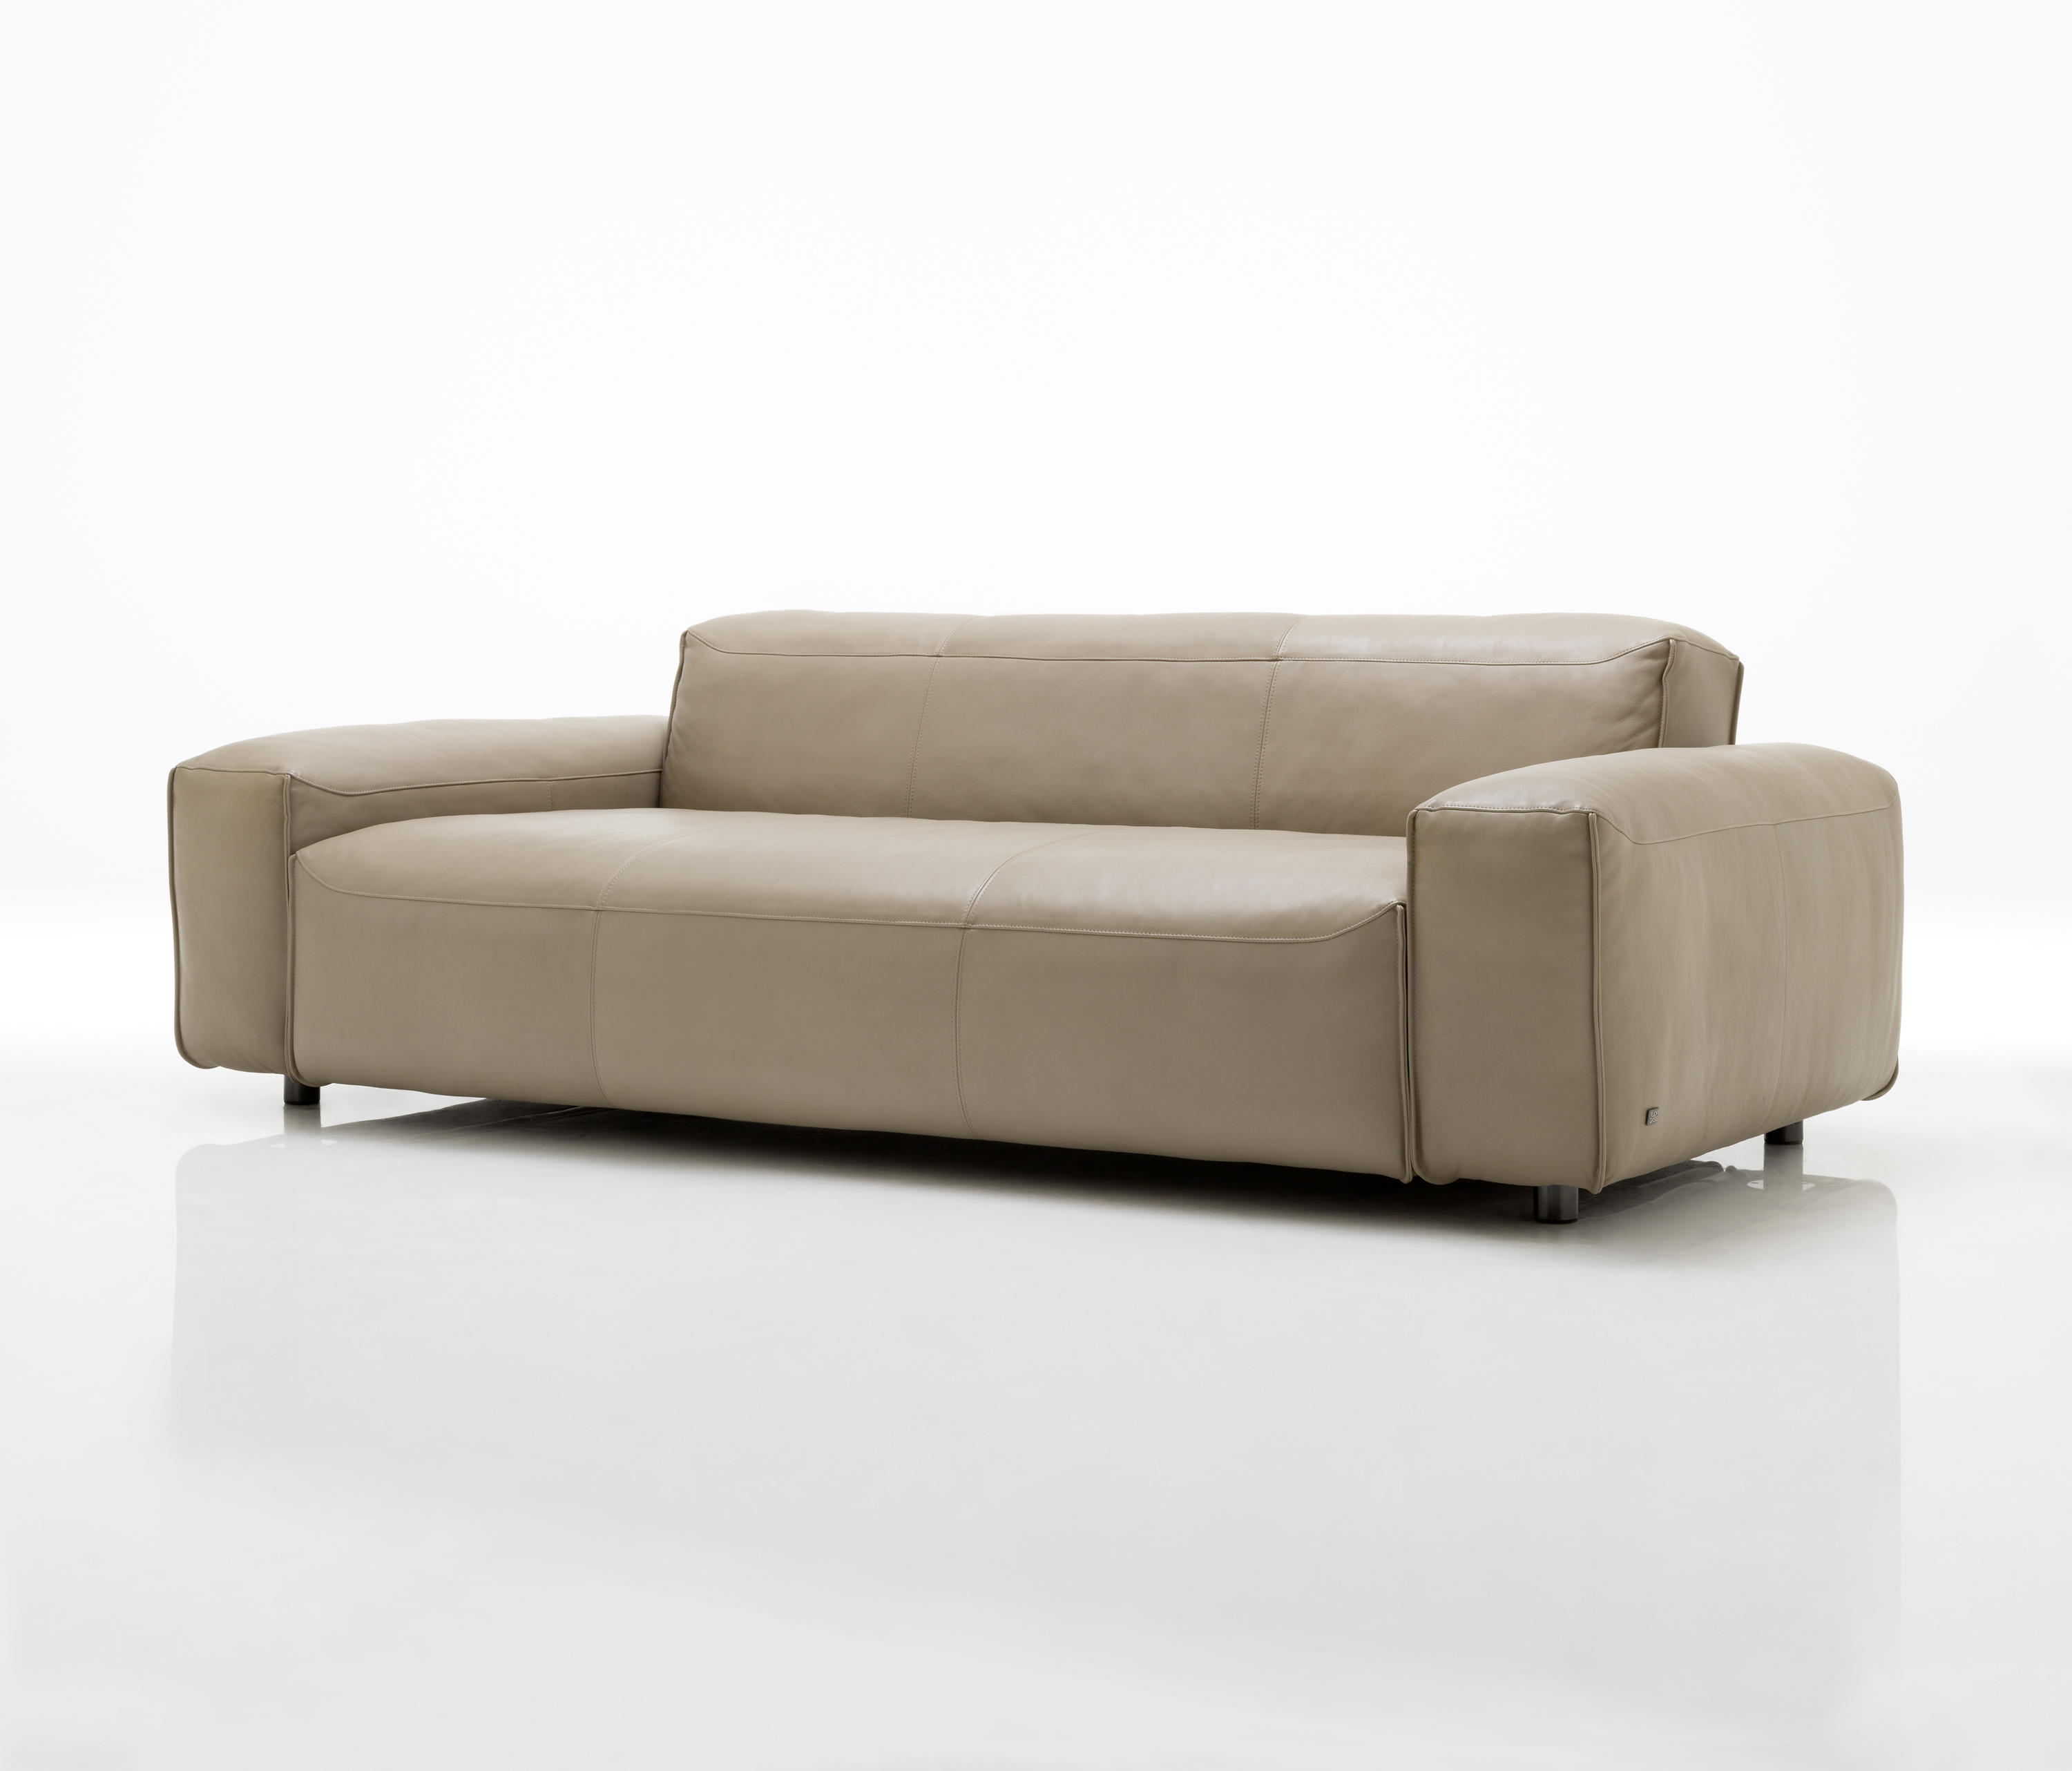 Couch Rolf Benz Couch Rolf Benz With Couch Rolf Benz